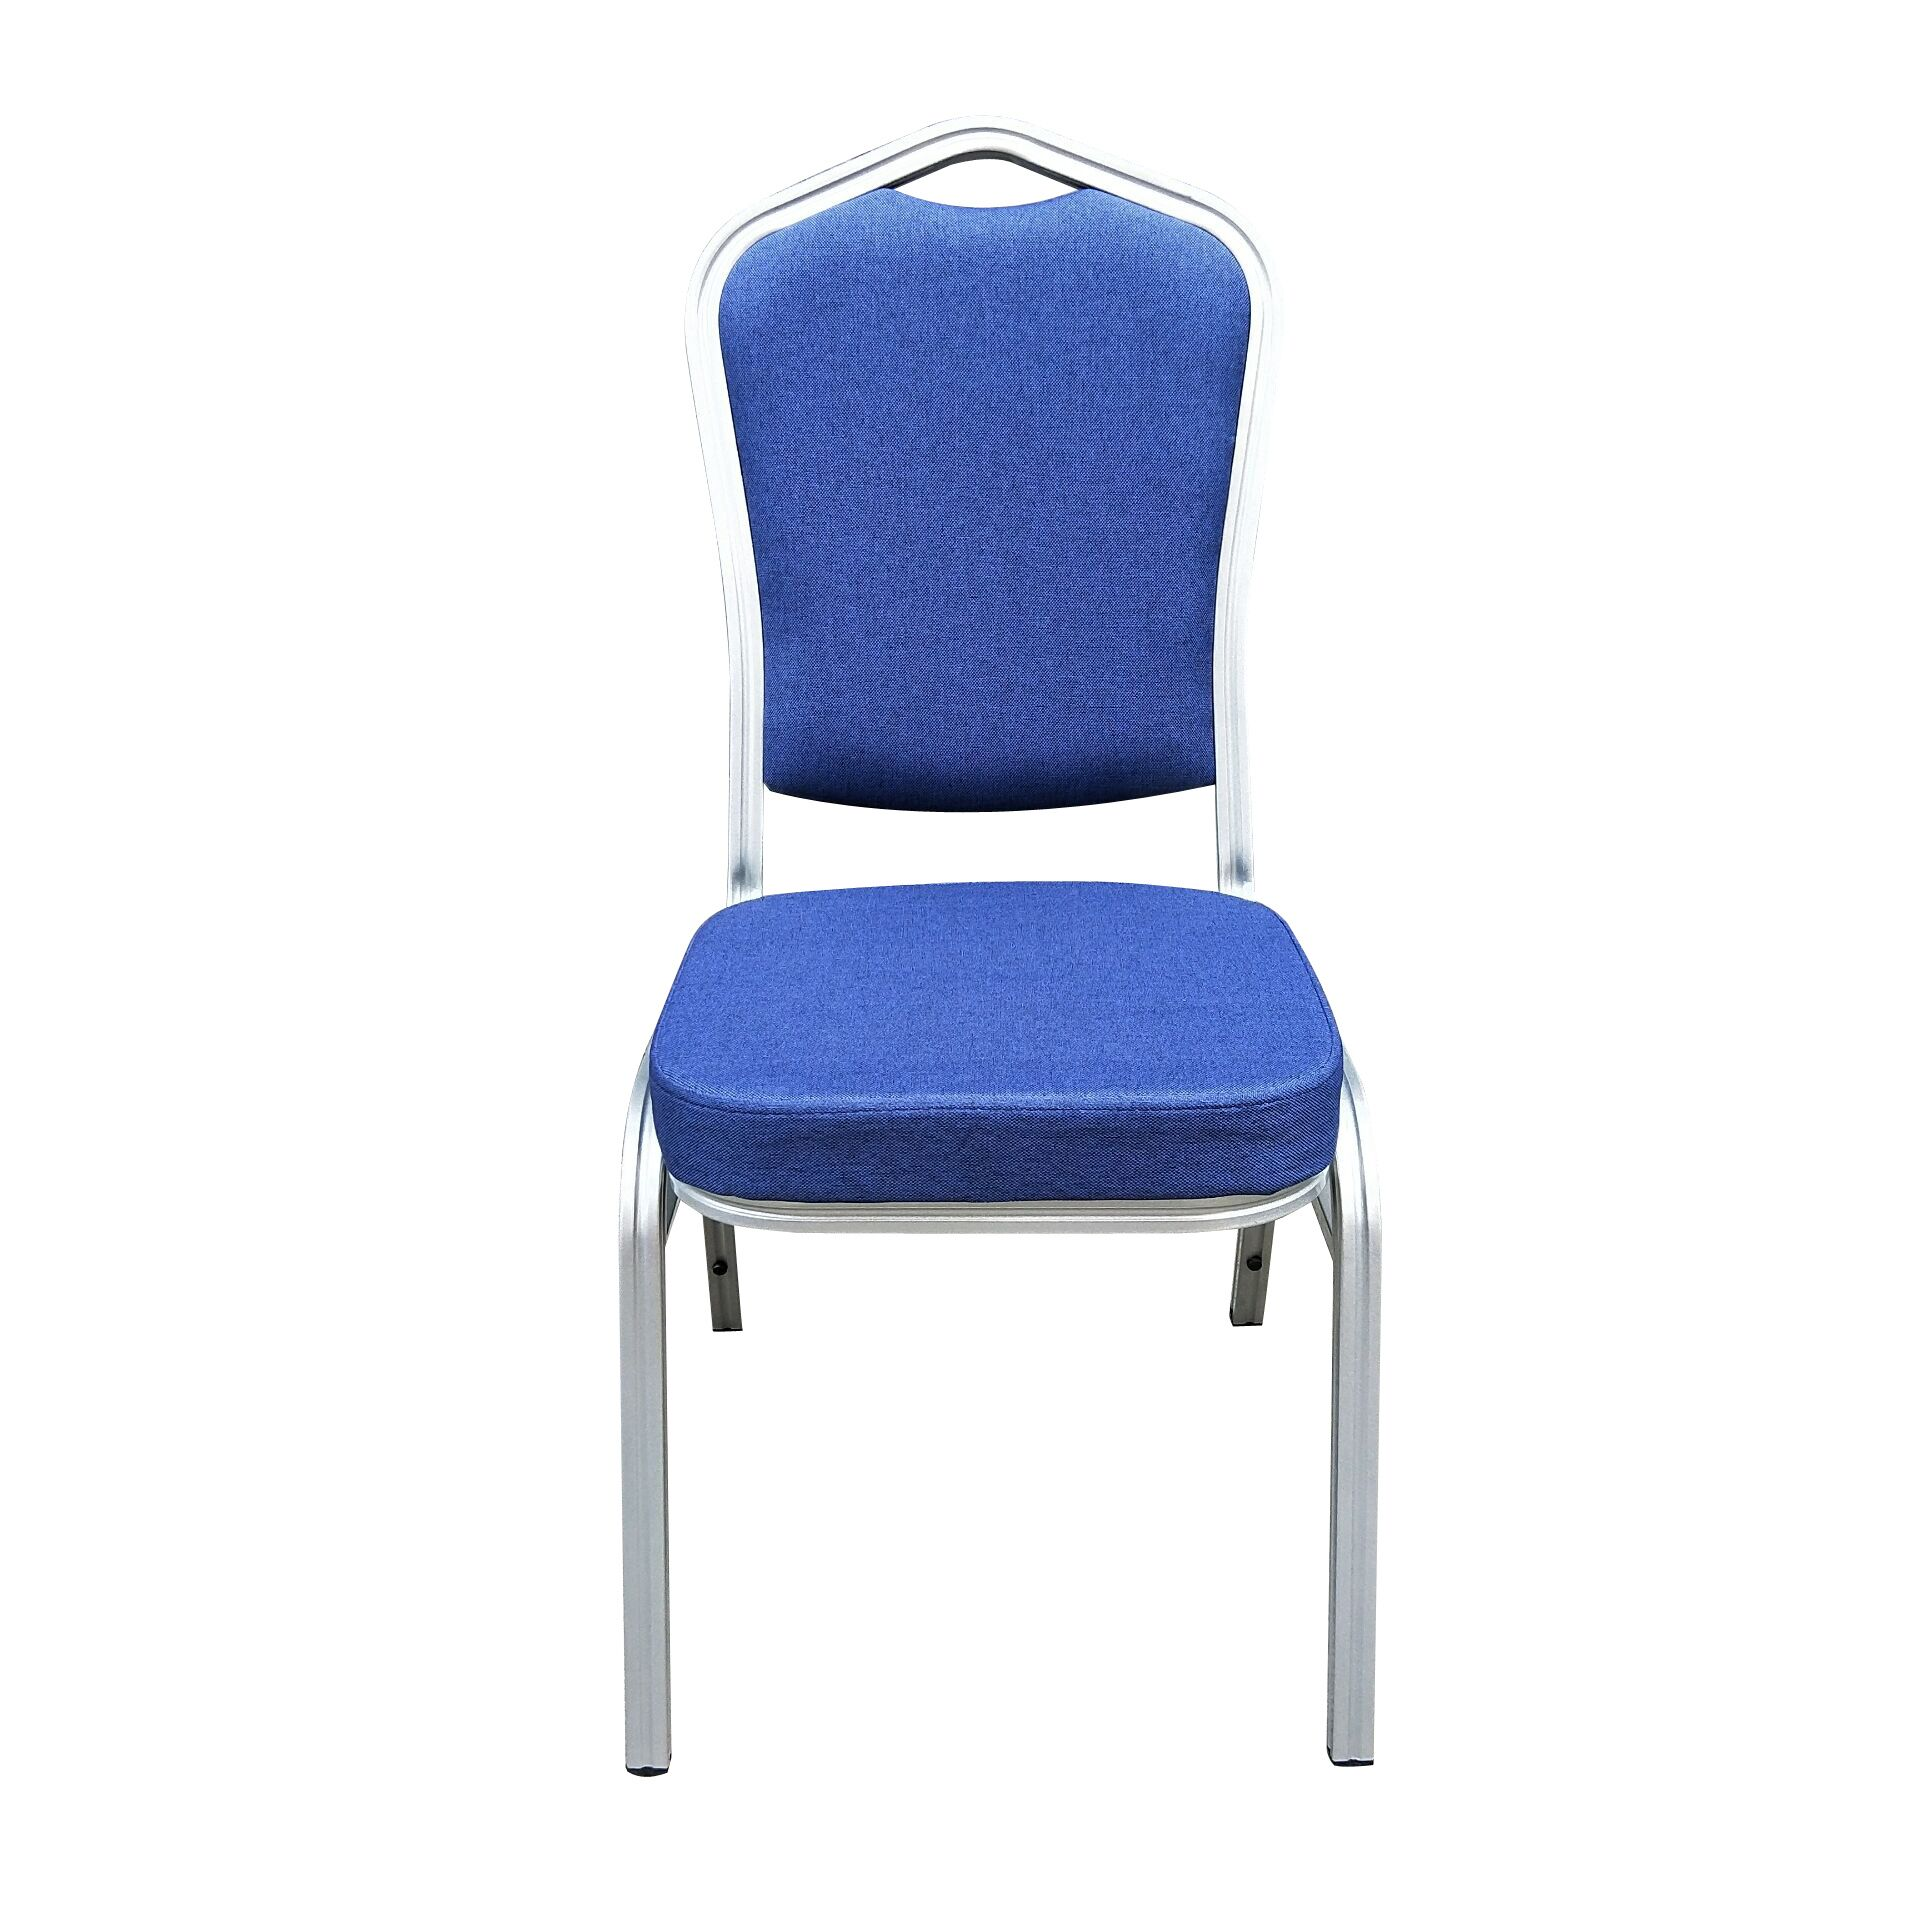 Wholesale Dealers of Banquet Chair Feet -